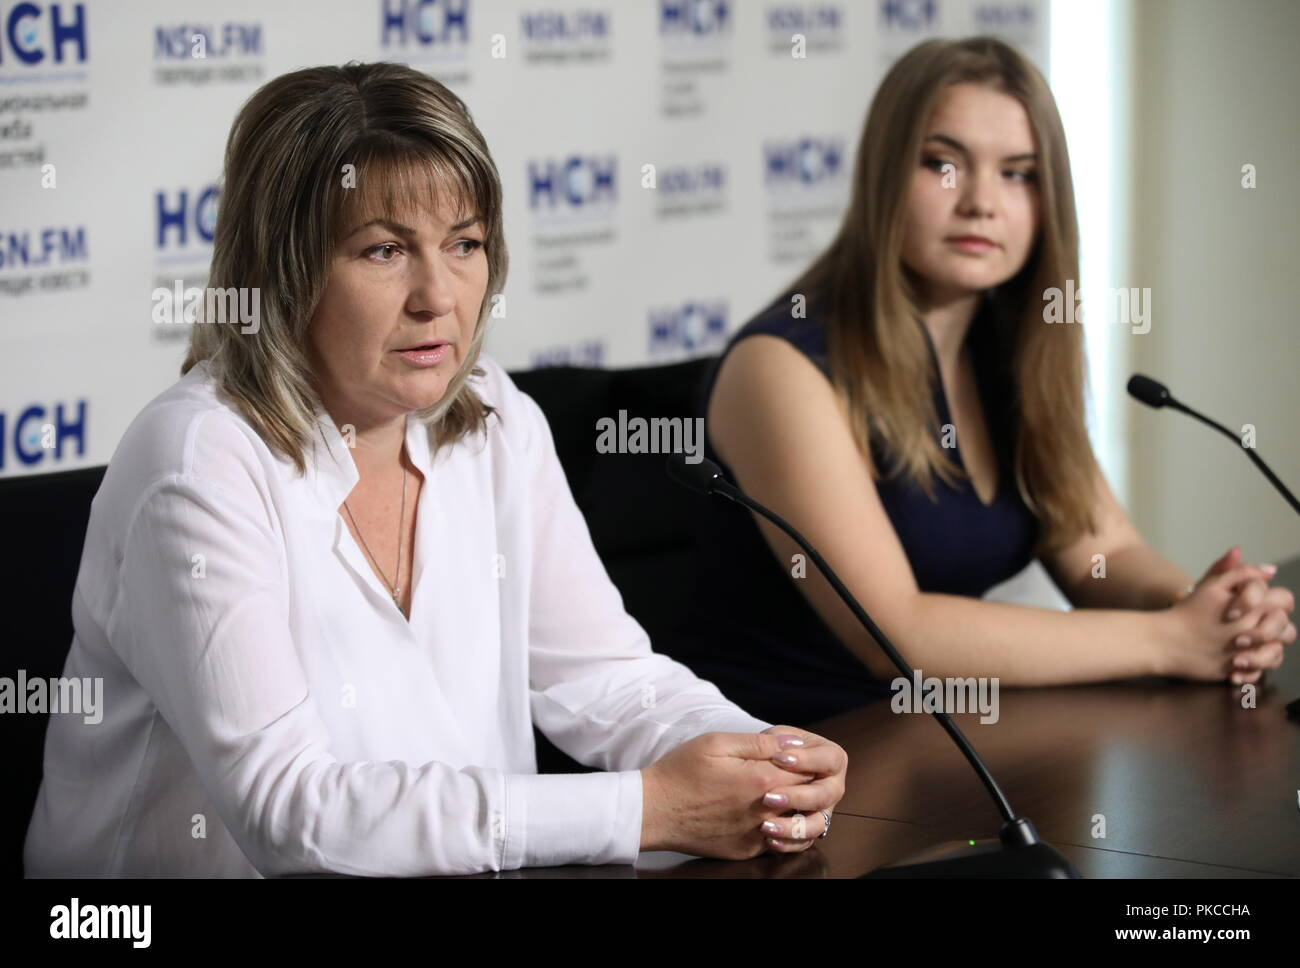 Wife of Anton Makarsky told about her burden to alcohol 17.05.2013 12